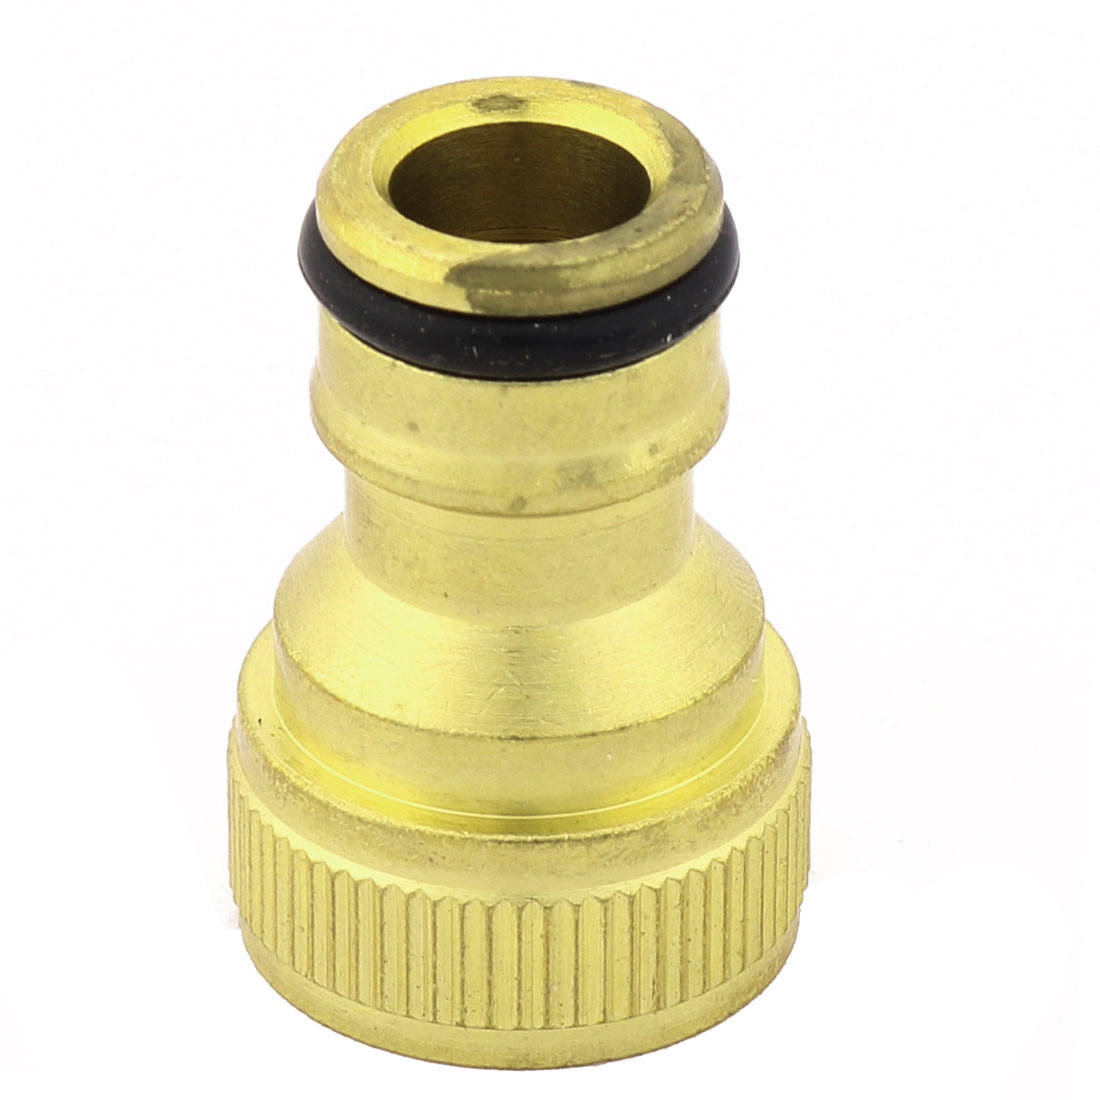 Home Kitchen Garden Brass Faucet Water Hose Pipe Switch Connector Tap Fitting